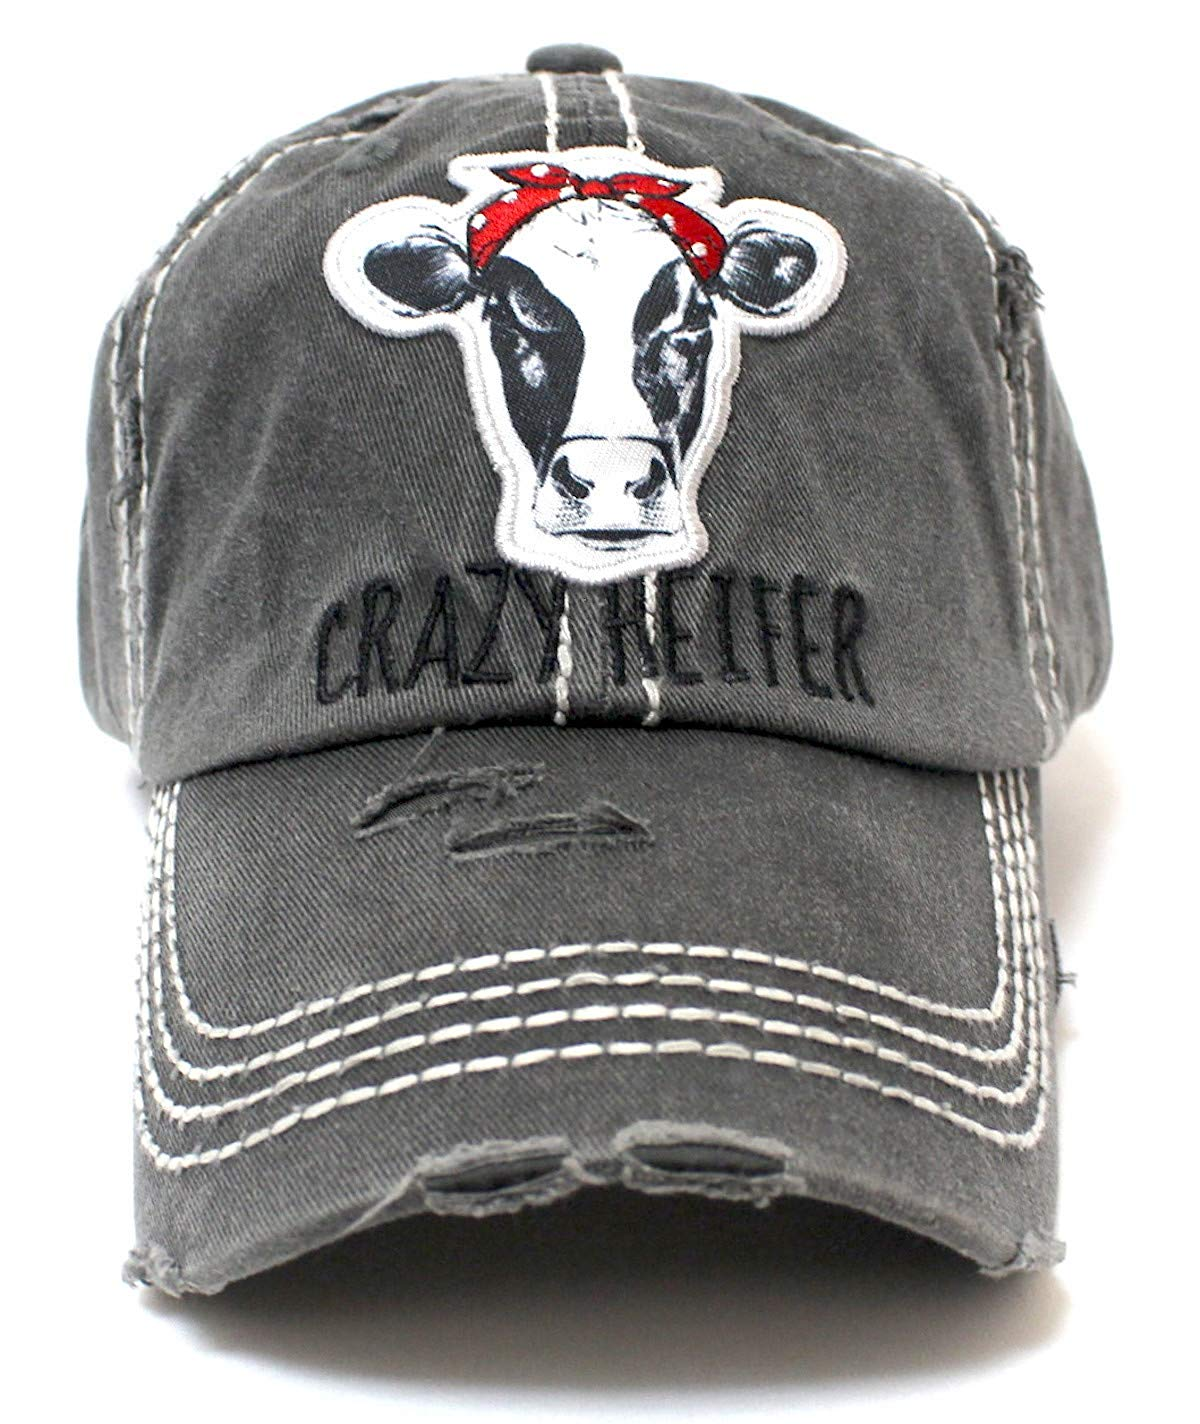 Charcoal Gray Crazy Heifer Cow Patch Embroidery Hat - Caps 'N Vintage